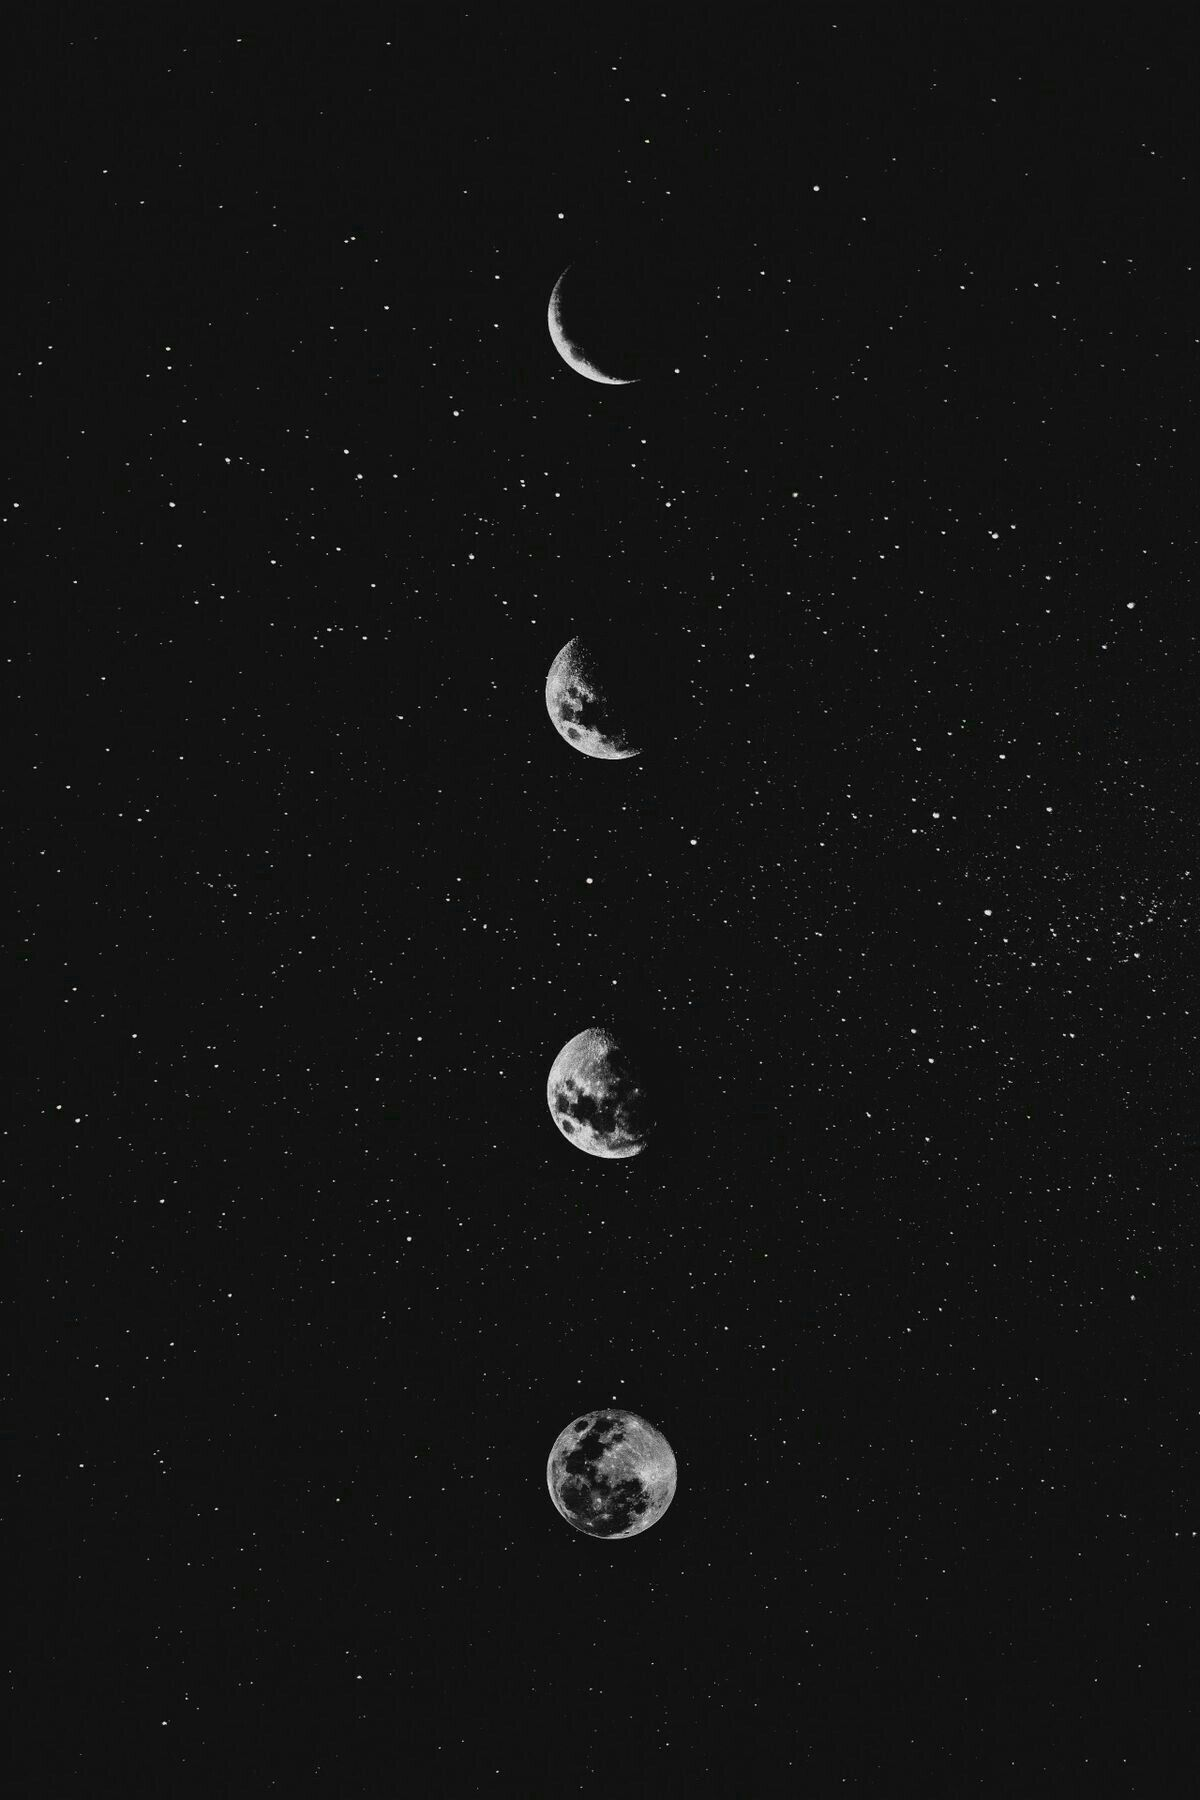 Dark Aesthetic Stars And Moon Wallpapers   Wallpaper Cave